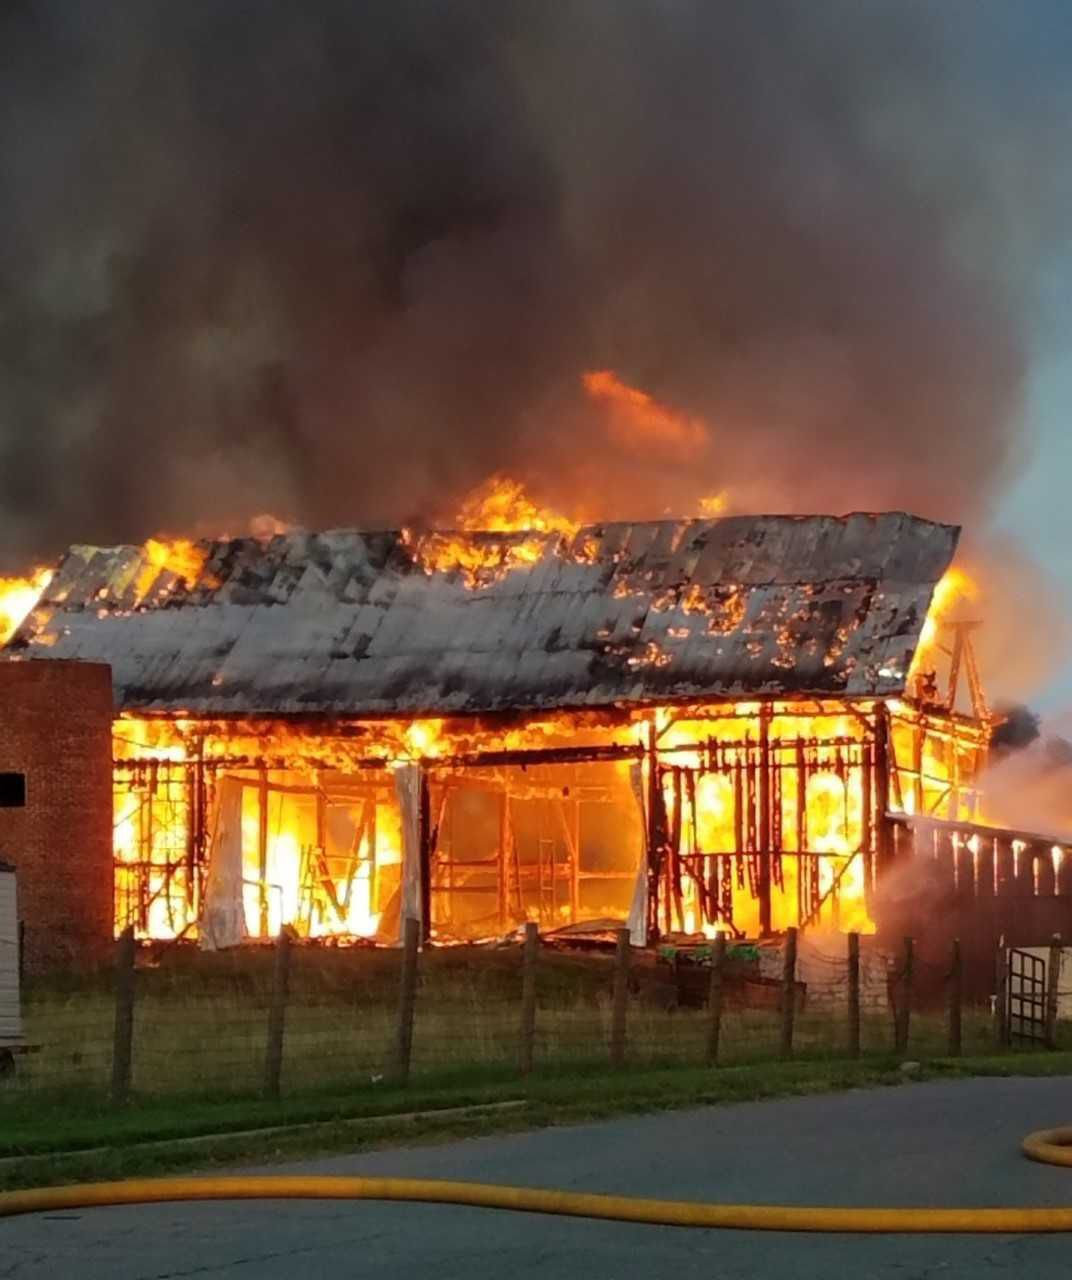 Barn burning summary. Barn Burning Summary. 2019-02-27